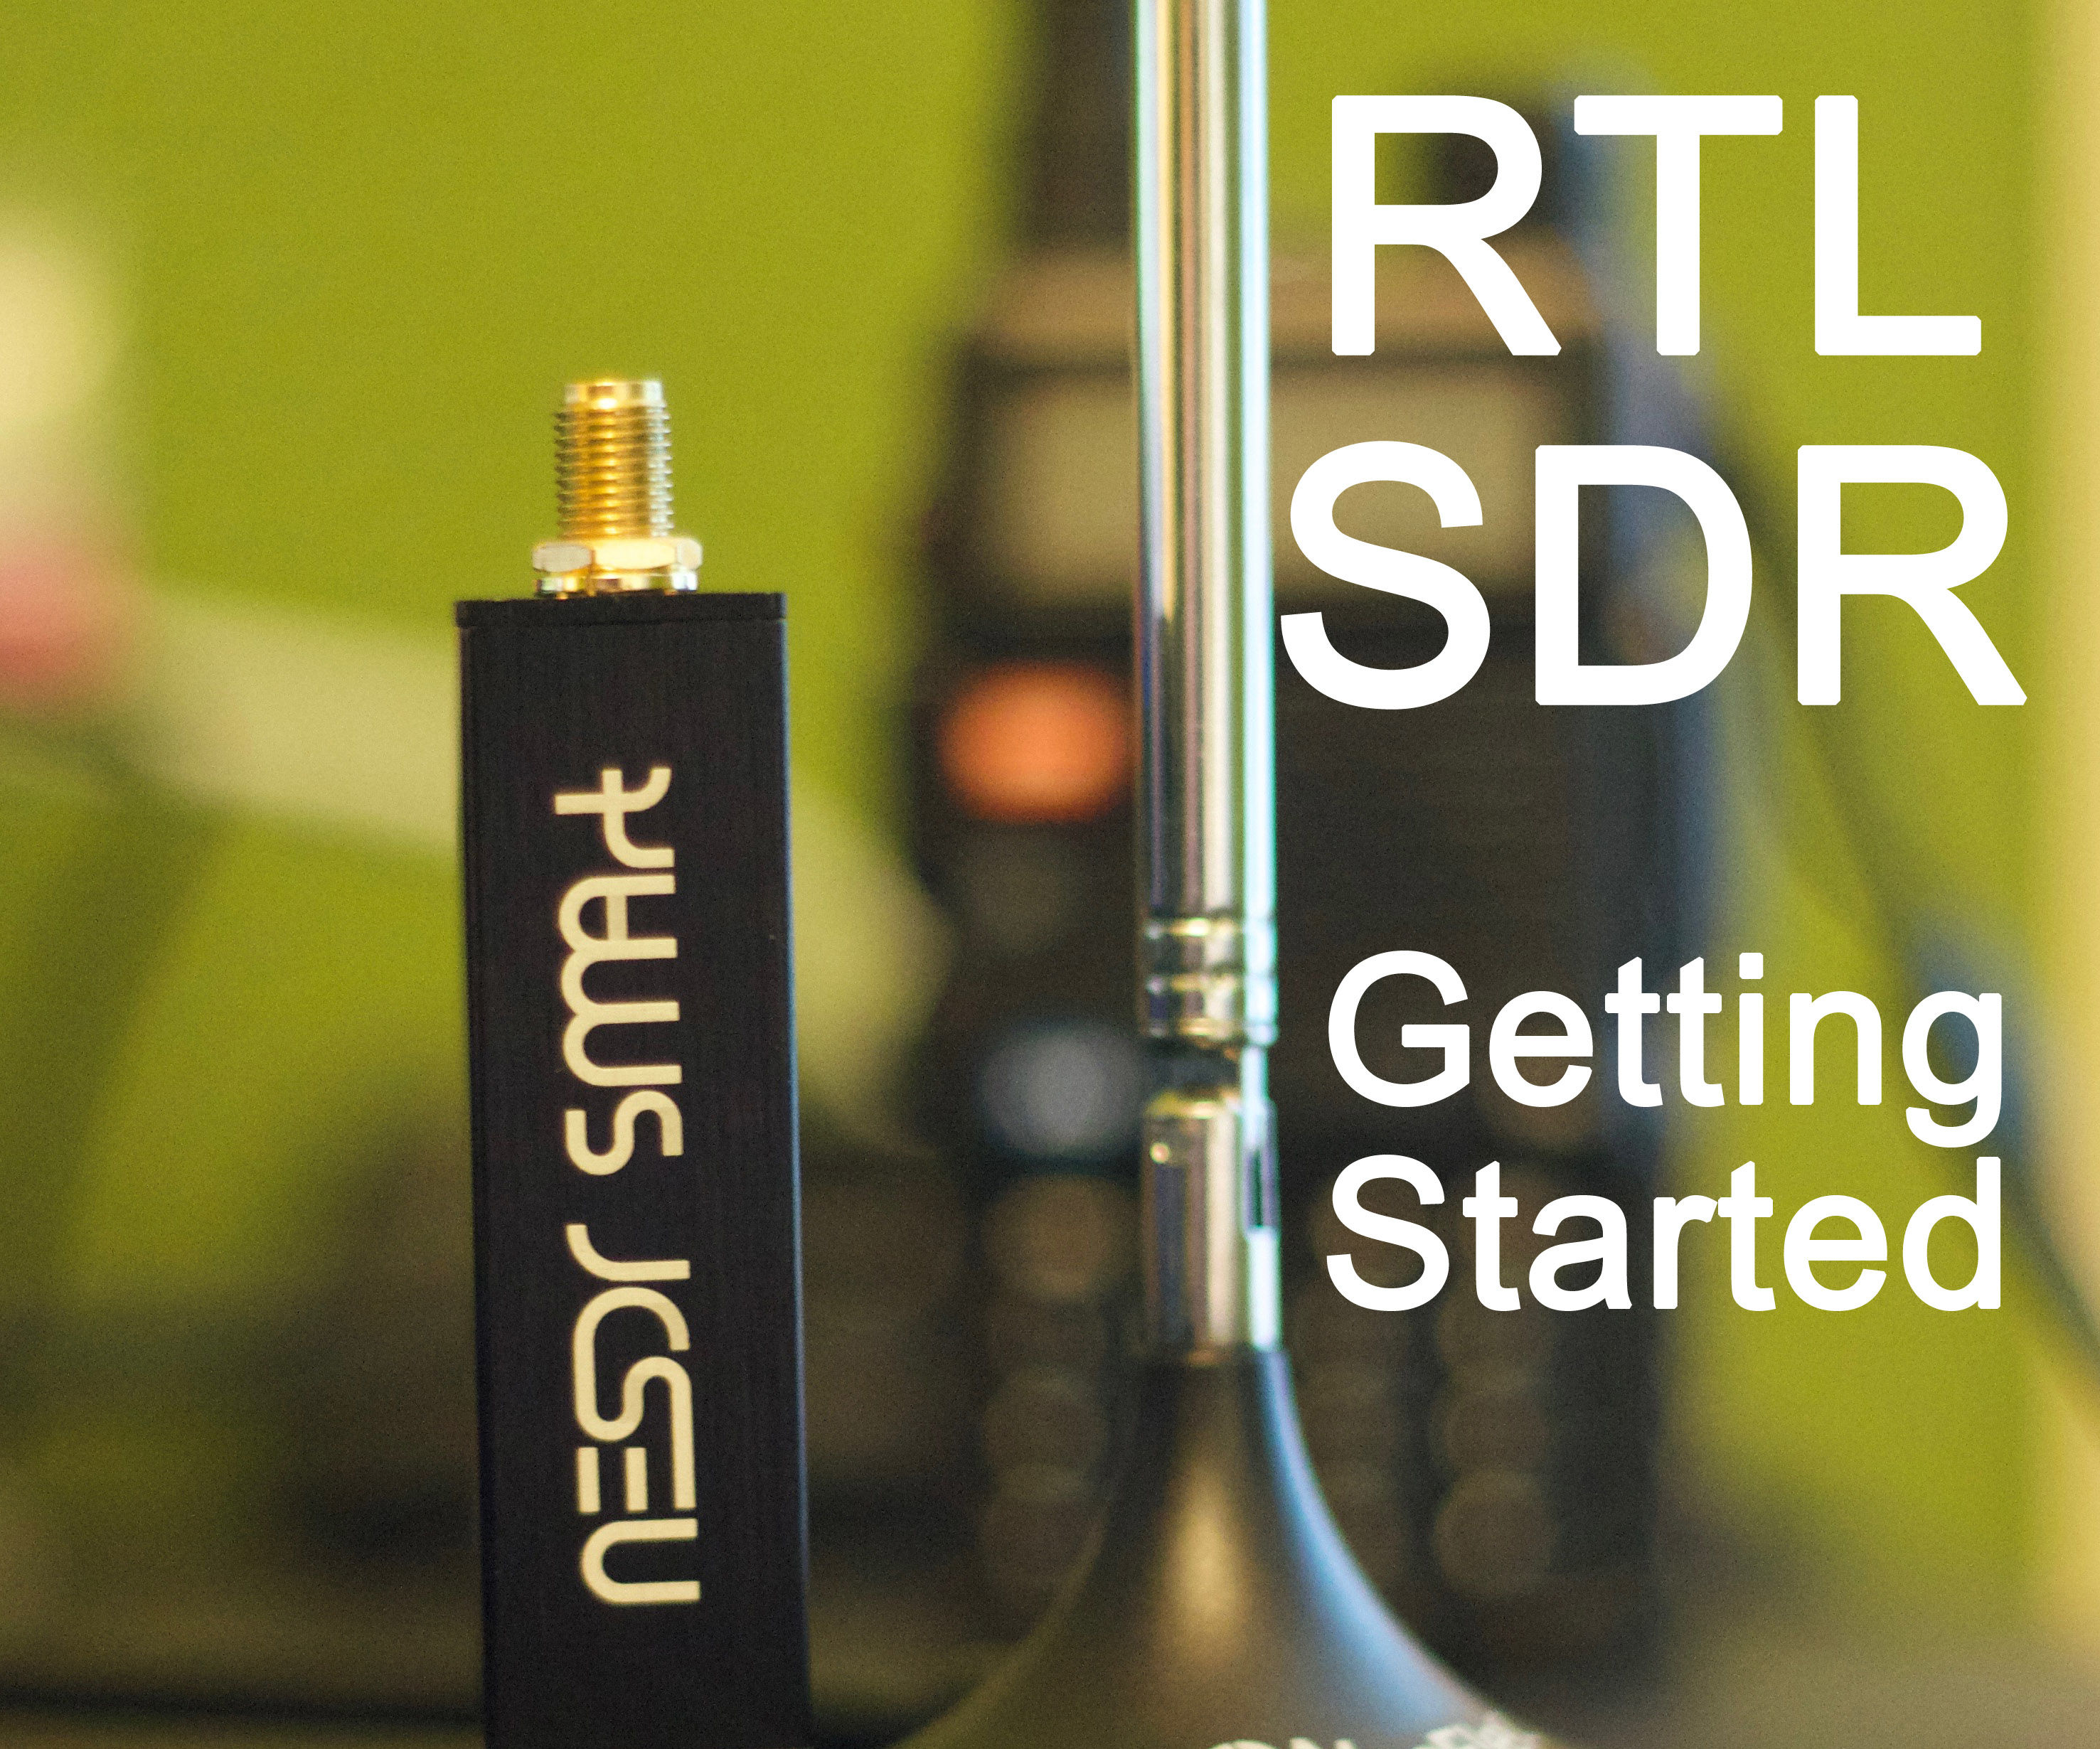 Using an RTL-SDR Dongle: 5 Steps (with Pictures)